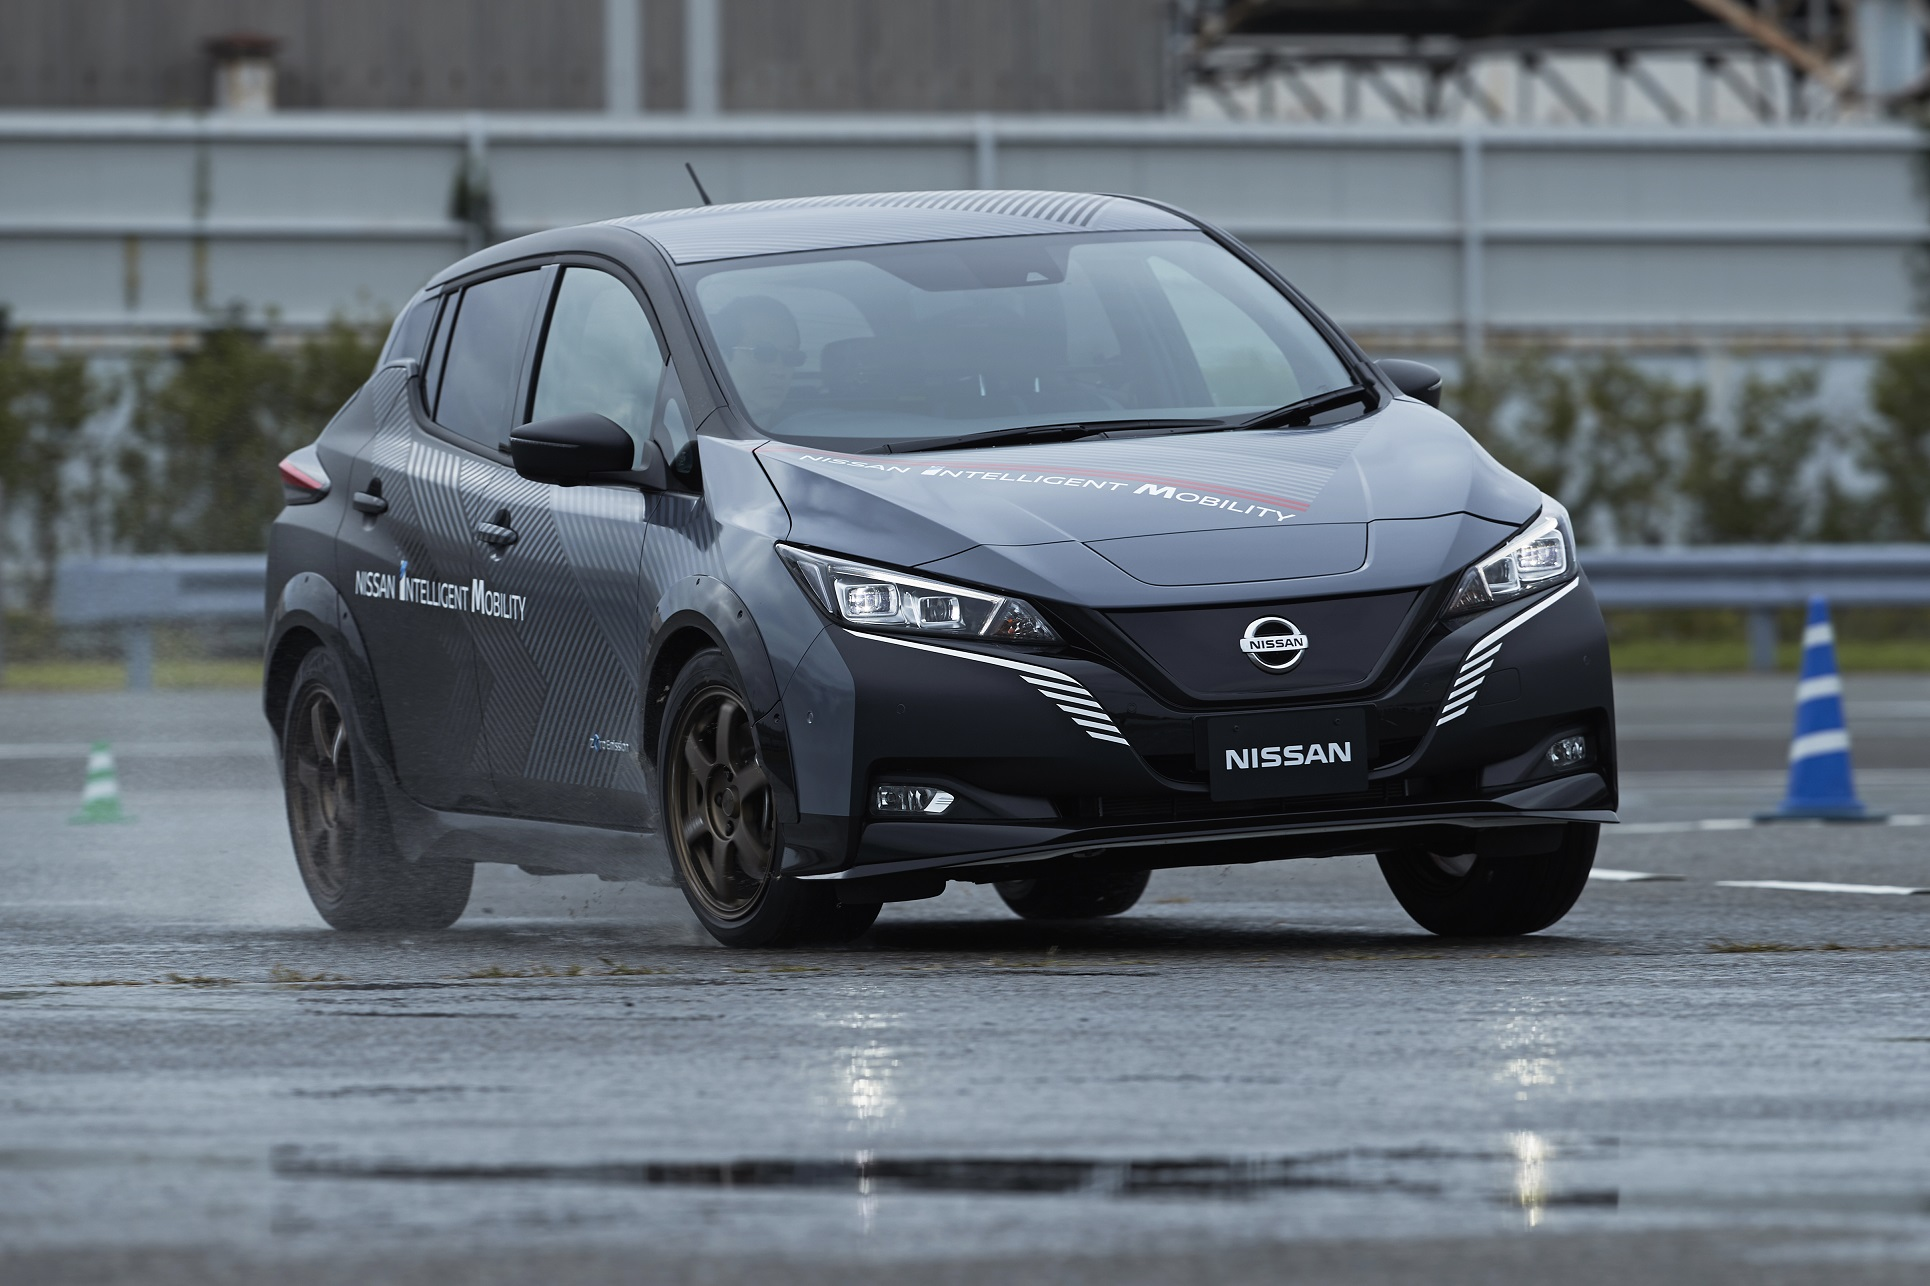 New Technologies in Nissan EV Test Car could Enhance Viability of Electric Vehicles